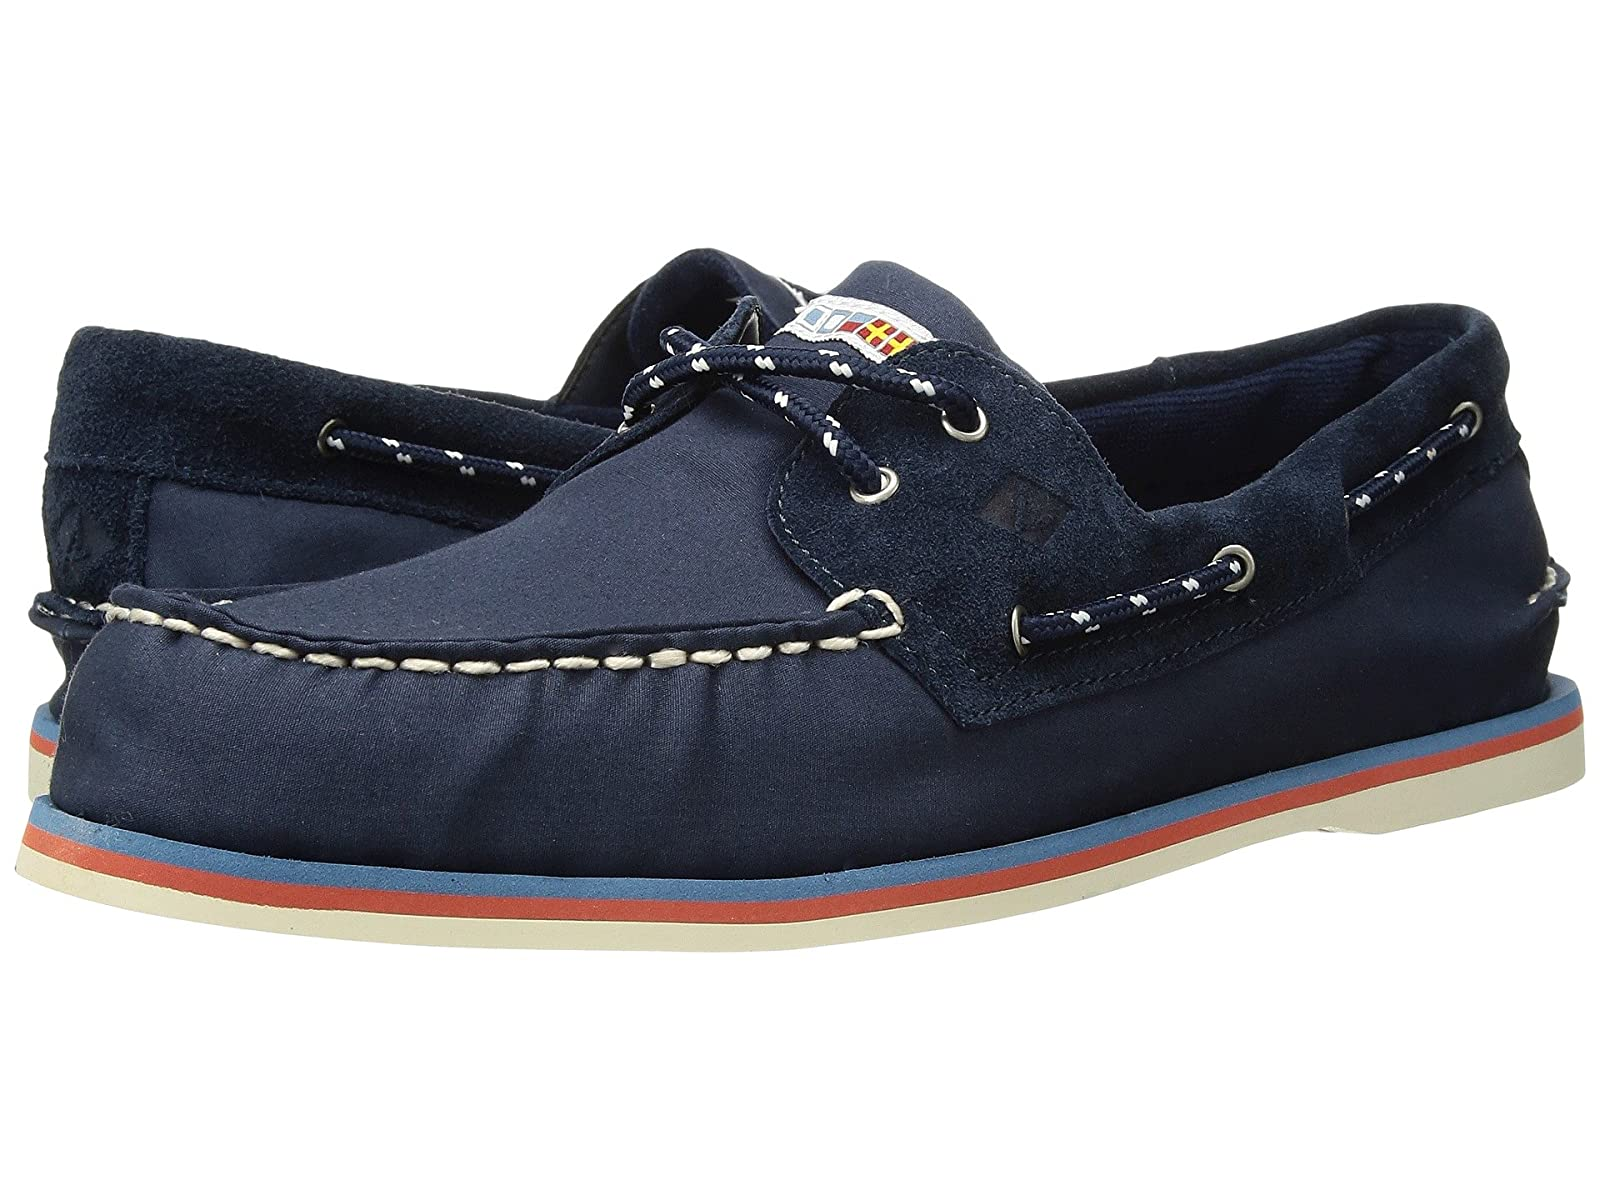 Sperry A/O 2-Eye Nautical CanvasSelling fashionable and eye-catching shoes